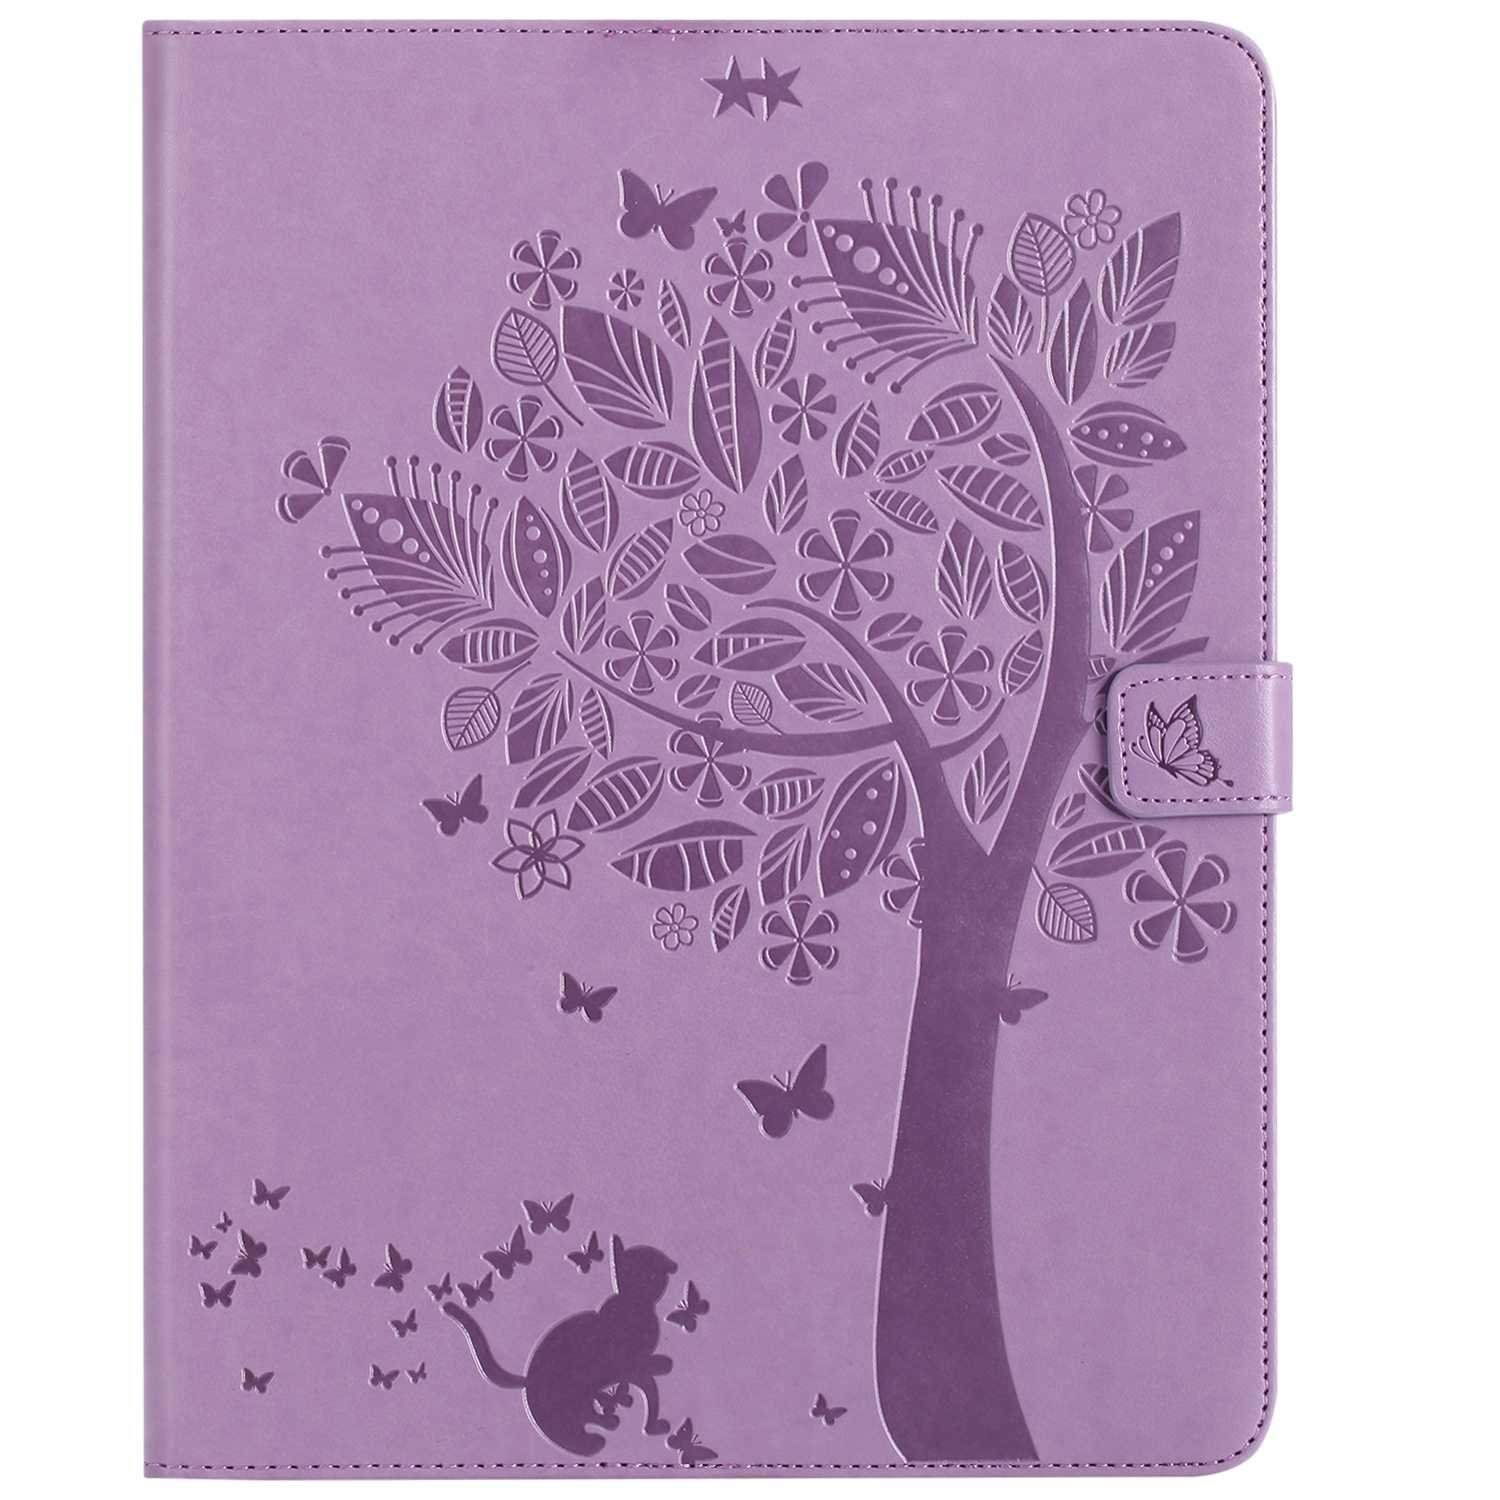 Bear Village iPad 2nd / 3rd / 4th Generation 9.7 Inch Case, Leather Magnetic Case, Fullbody Protective Cover with Stand Function for Apple iPad 2nd / 3rd / 4th Generation 9.7 Inch, Purple